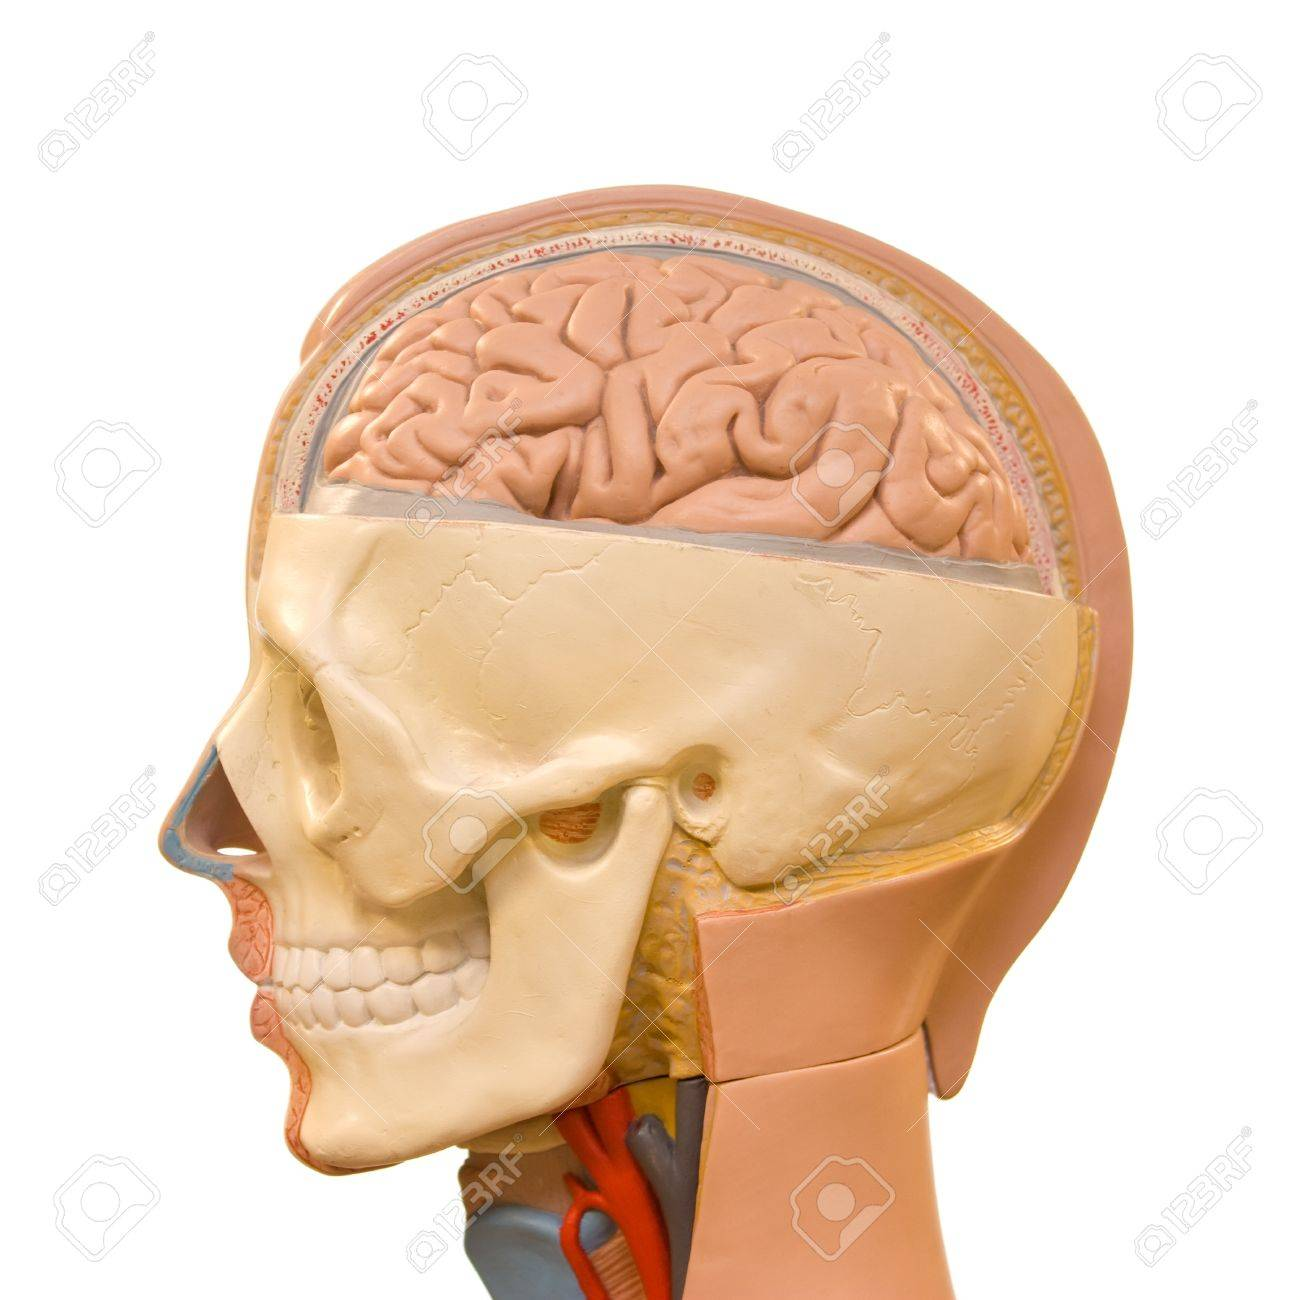 Human Brain Anatomy Stock Photo Picture And Royalty Free Image